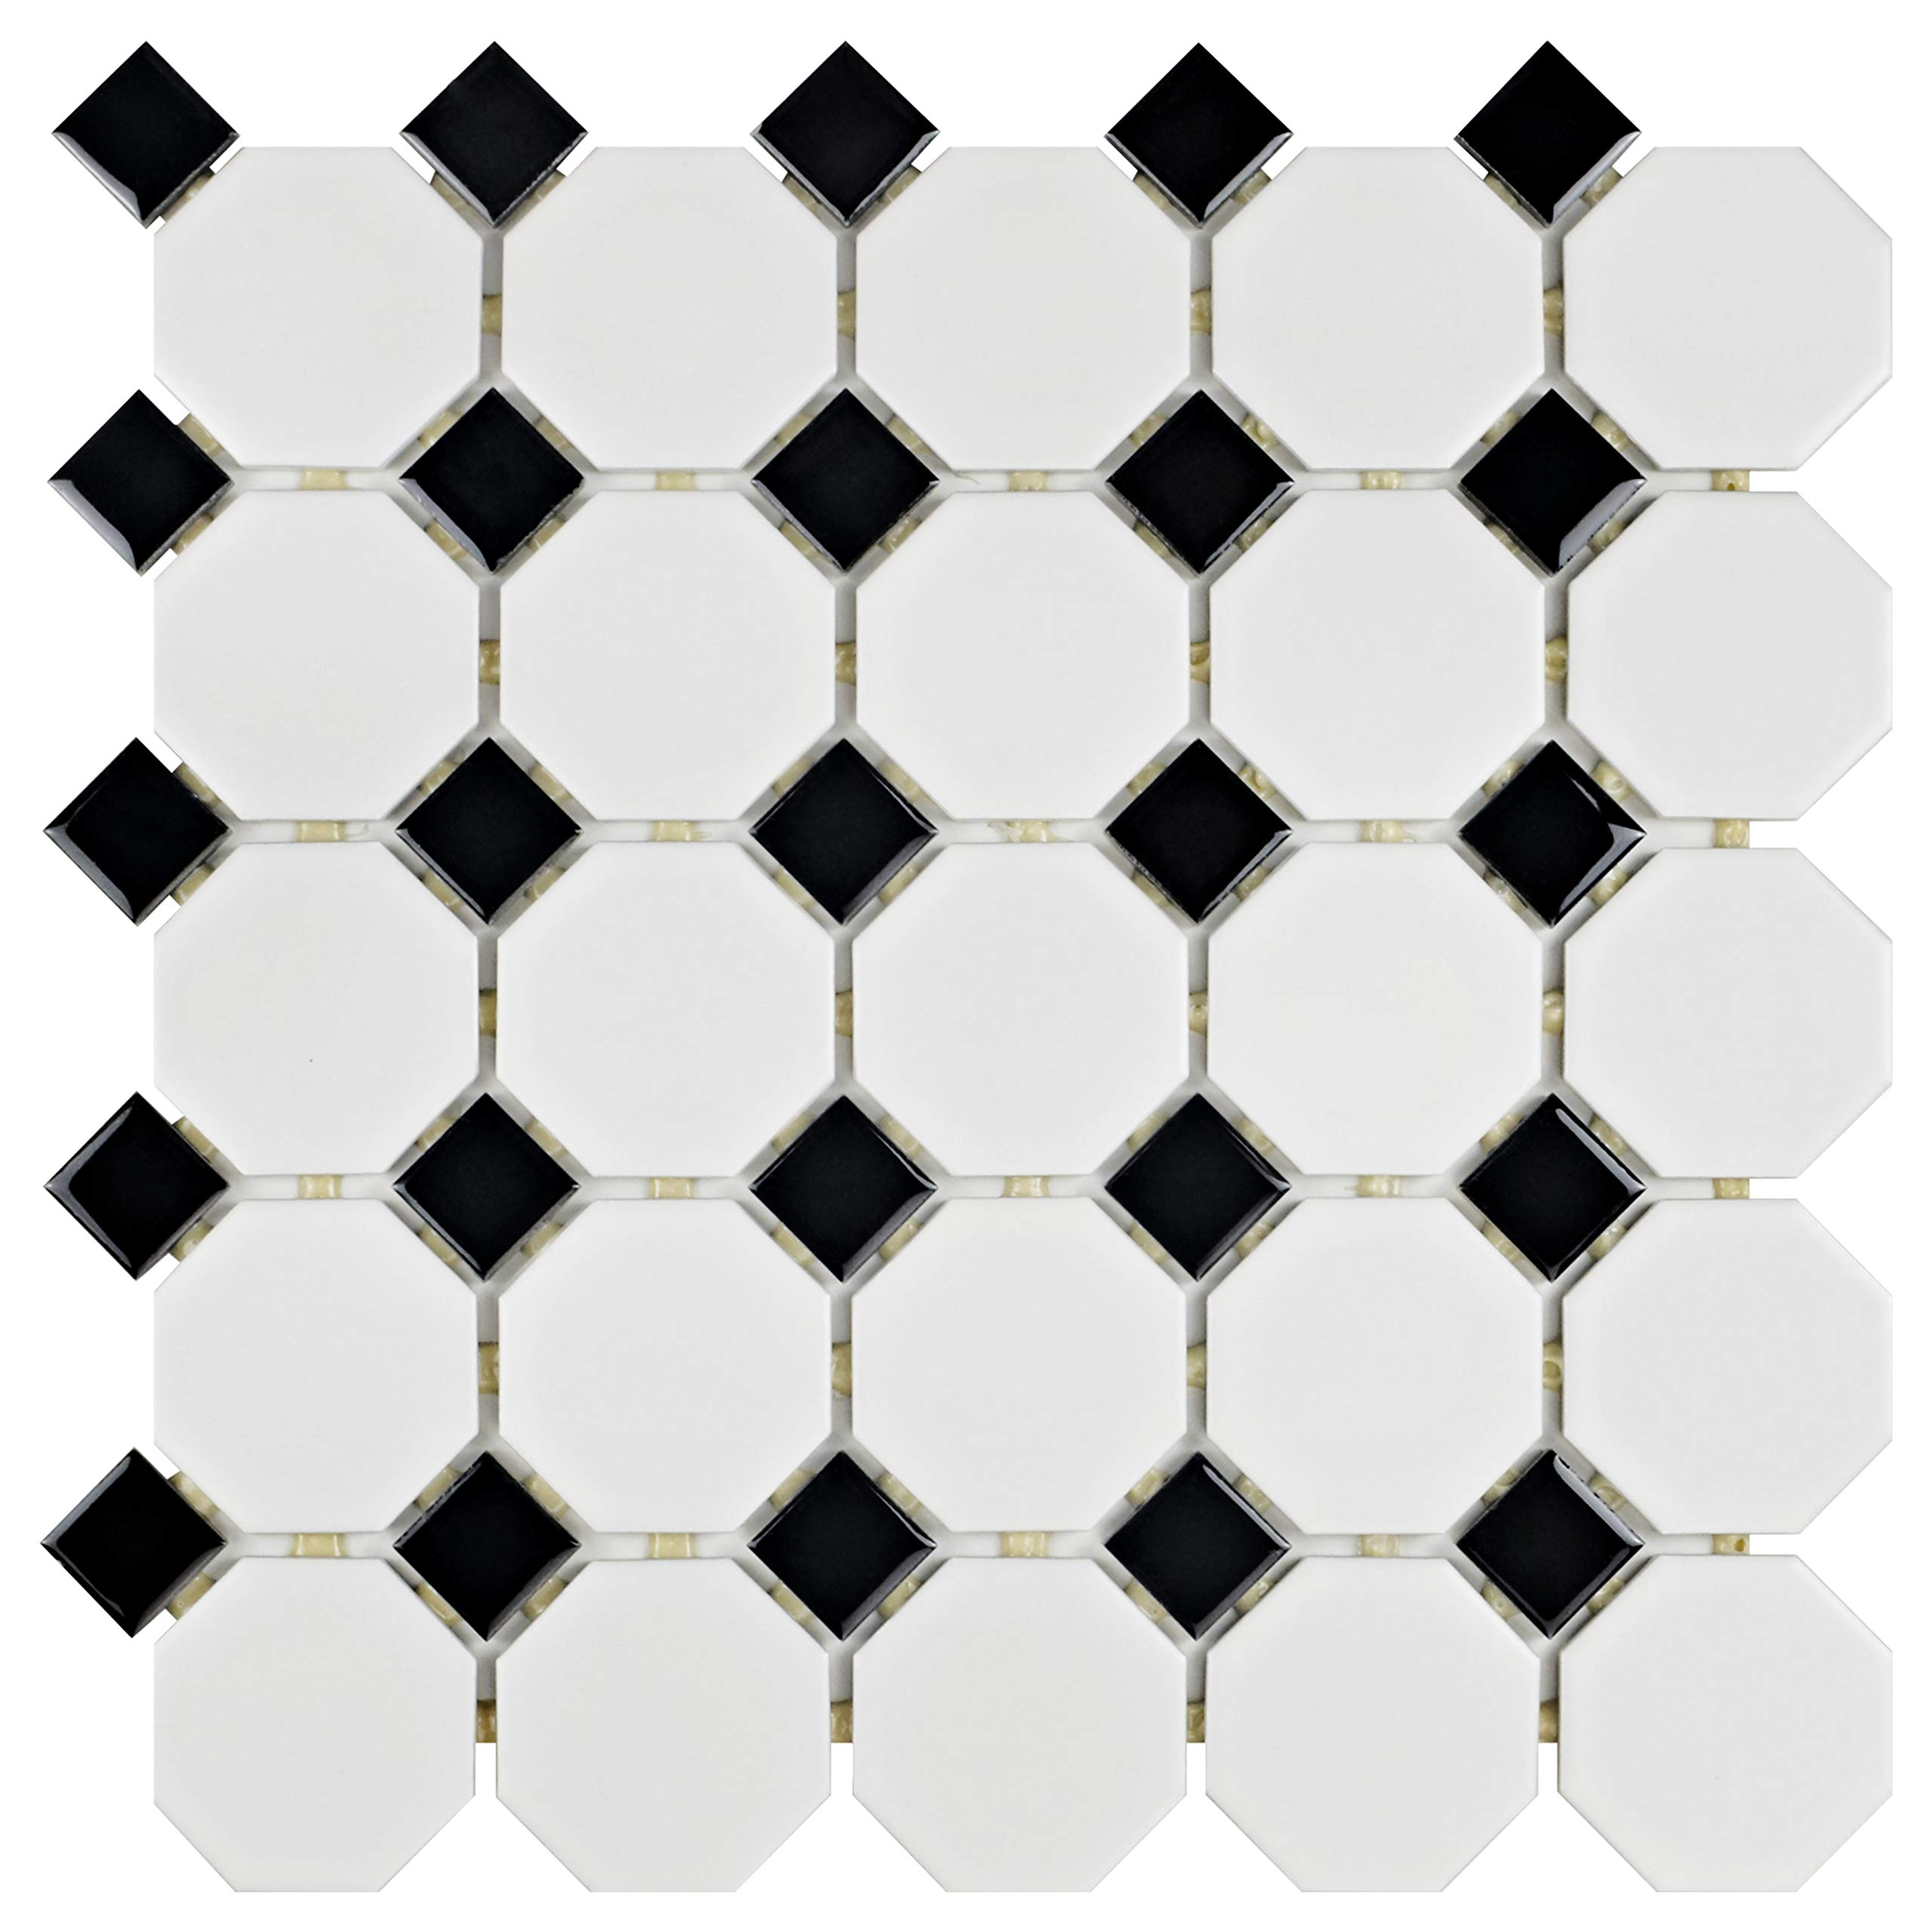 SomerTile FXLM2OWD Retro Octagon Porcelain Floor and Wall Tile, 11.5'' x 11.5'', Matte White with Glossy Black Dot by SOMERTILE